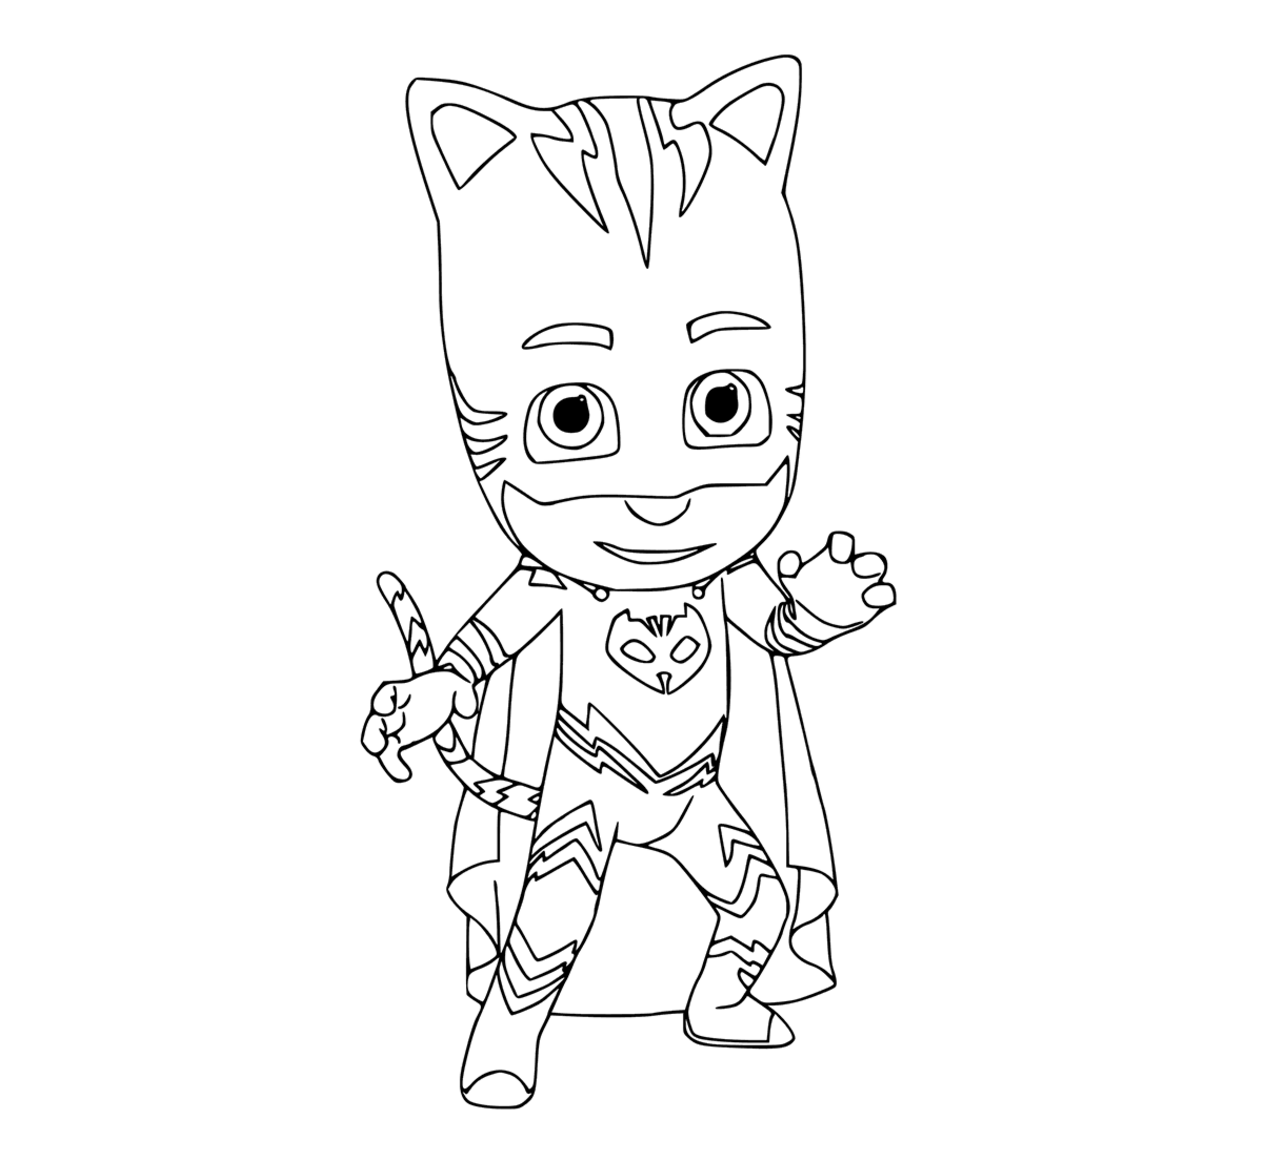 Pj Masks Coloring Pages To Download And Print For Free Personajes